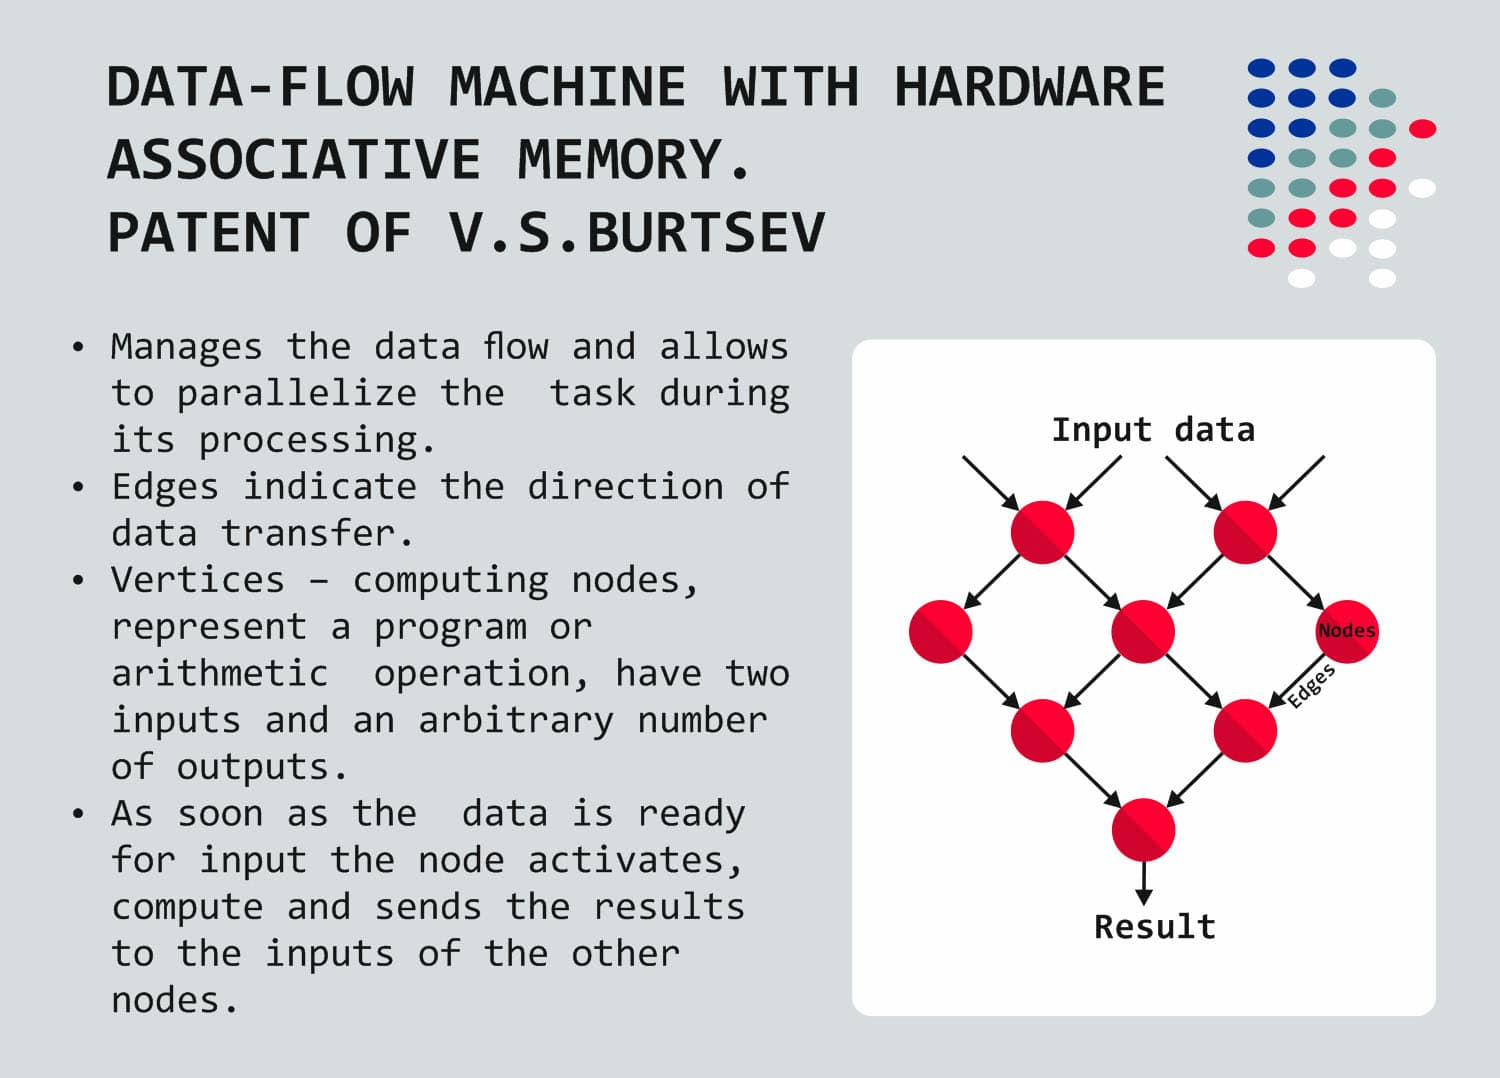 Data-flow machine with hardware associative memory Patent of V.S.Burtsev